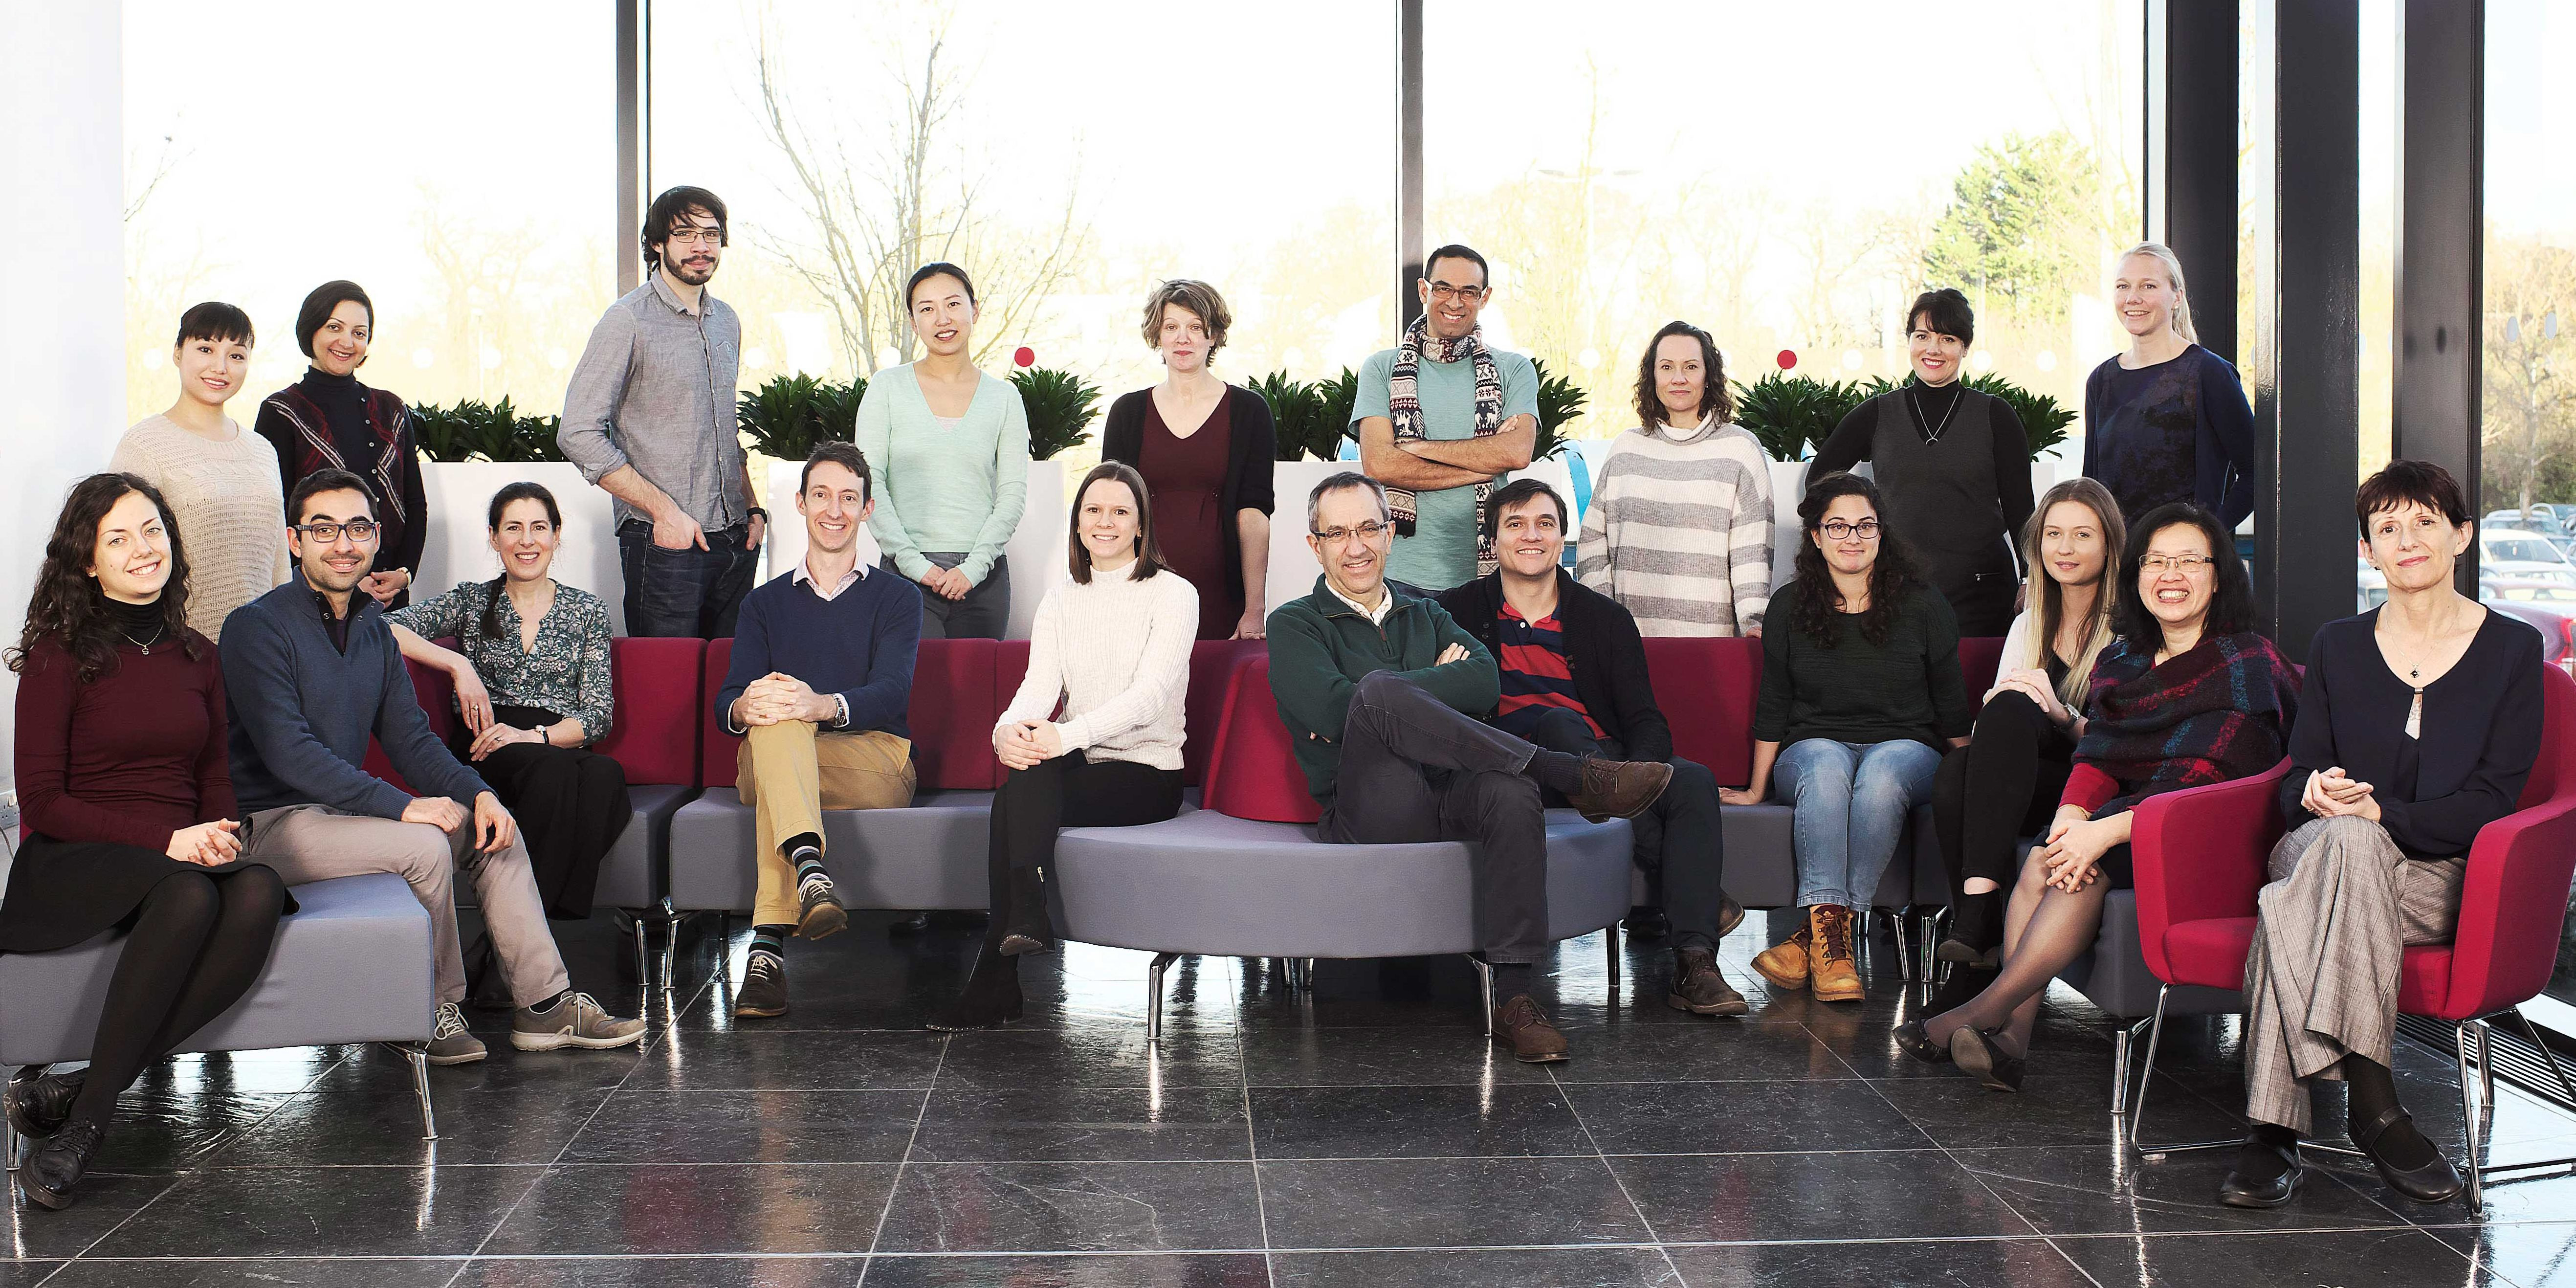 Prof Caldas with his research group